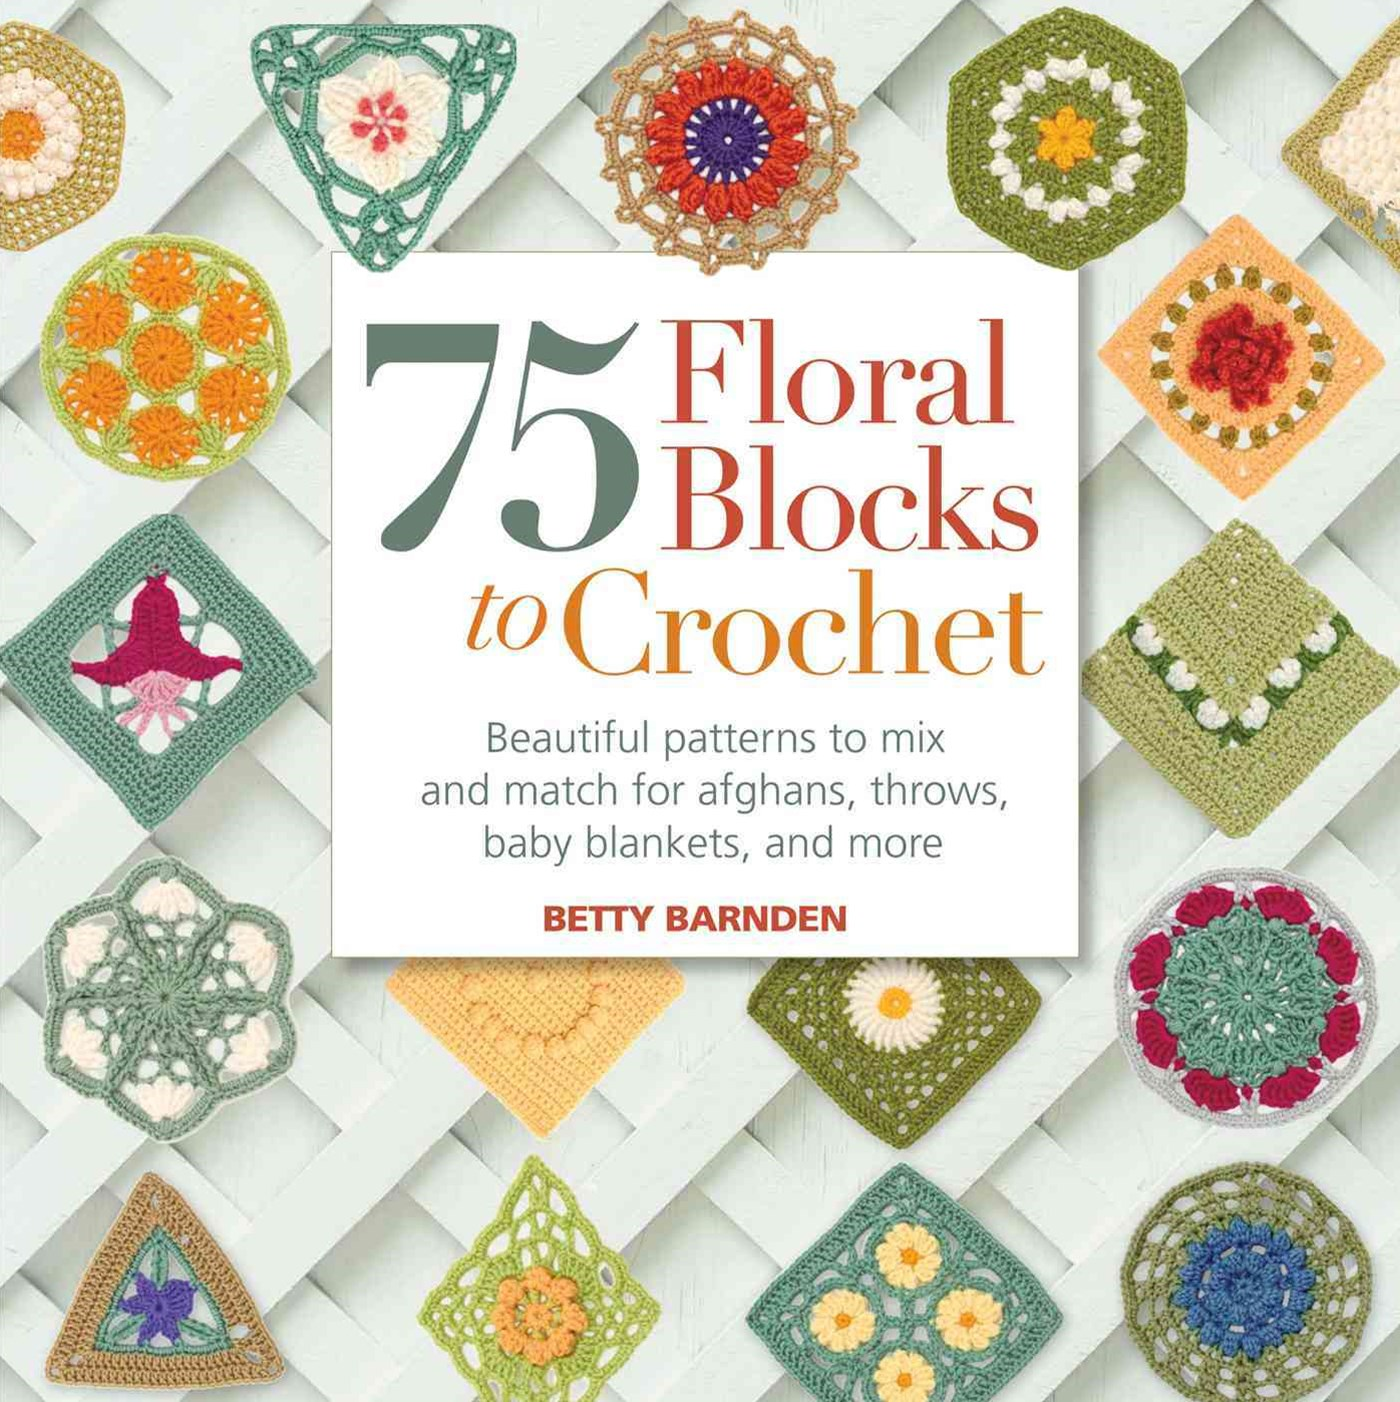 75 Floral Blocks to Crochet